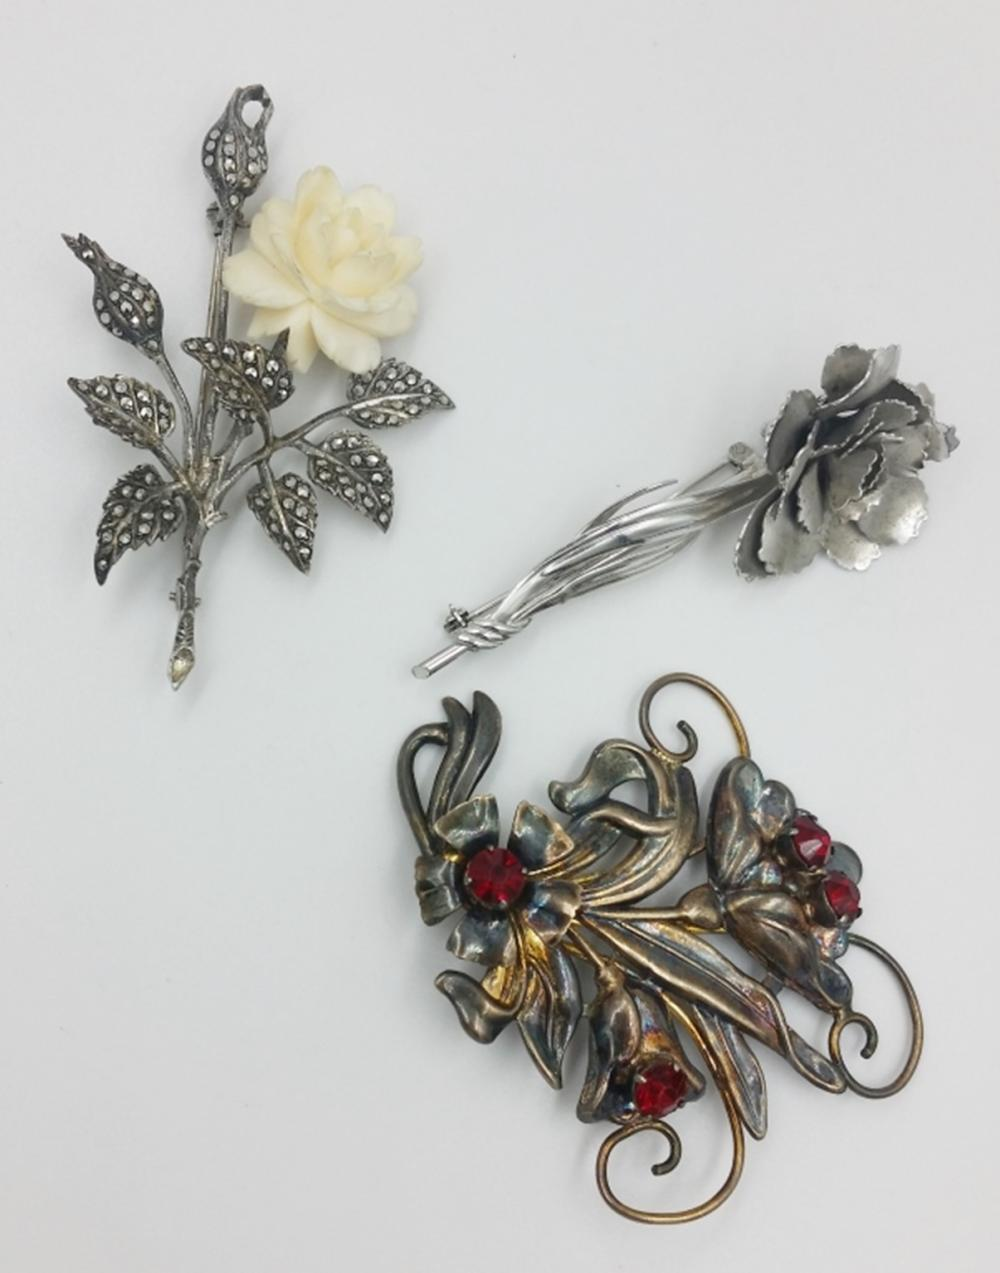 3 STERLING PINS